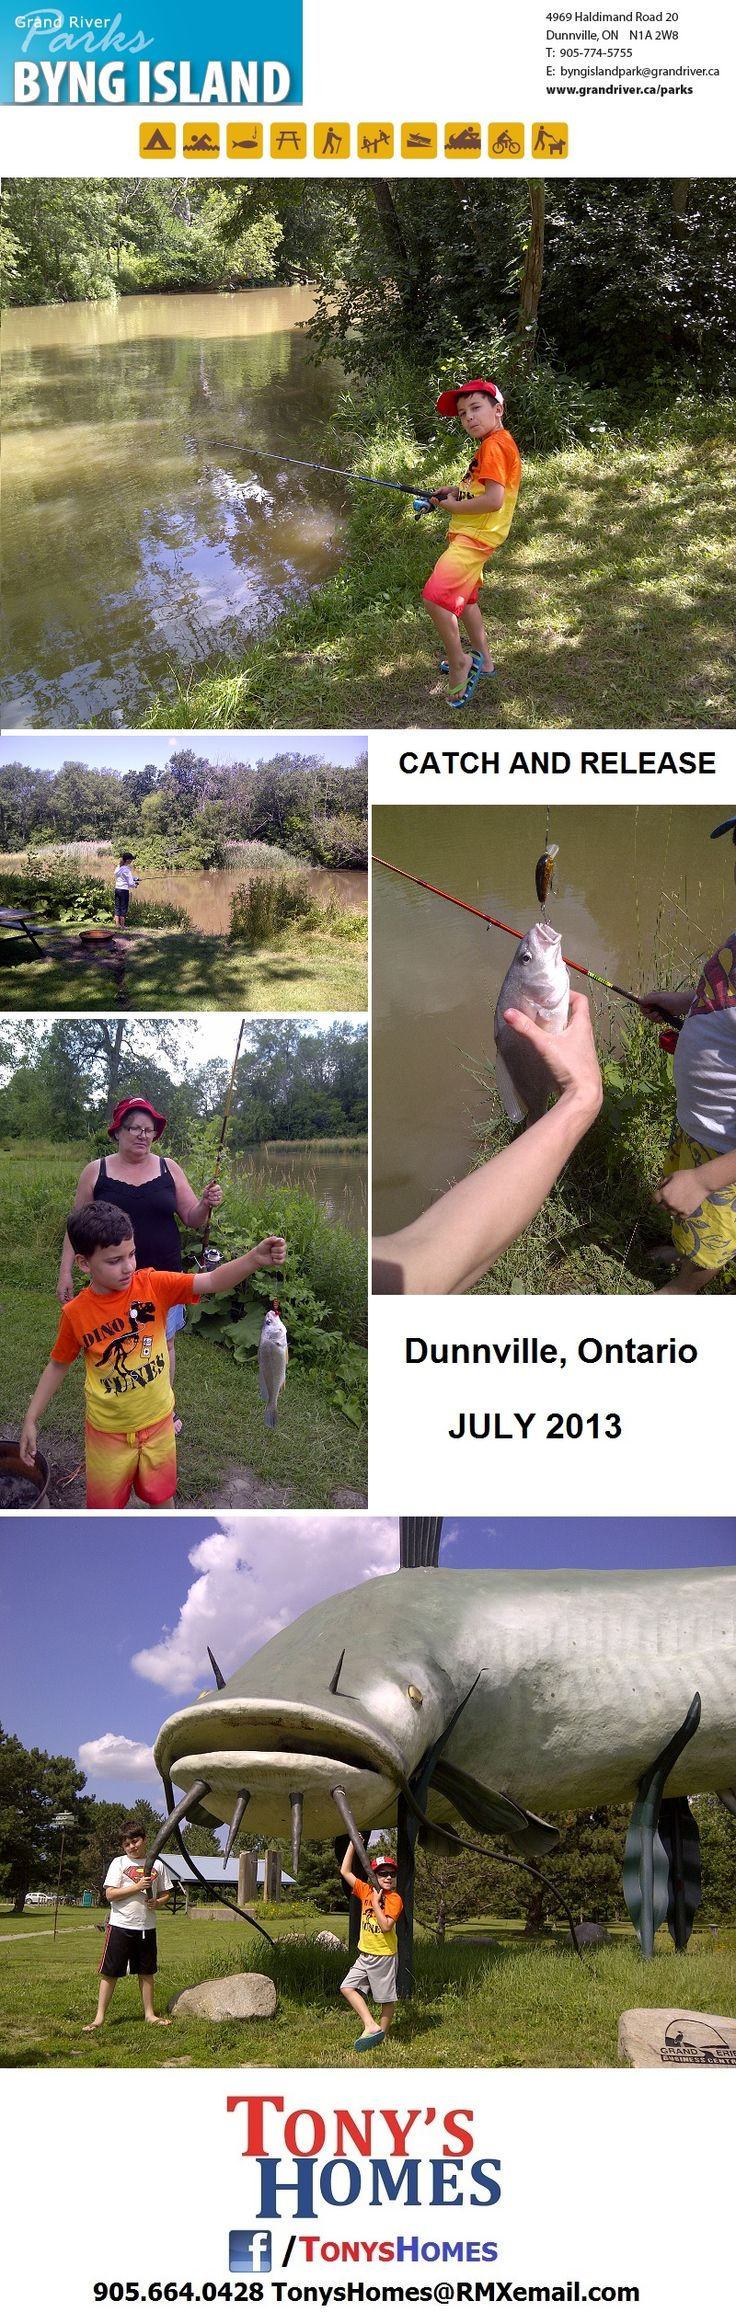 Gone Fishin' Byng Island Dunnville, Ontario July 2013